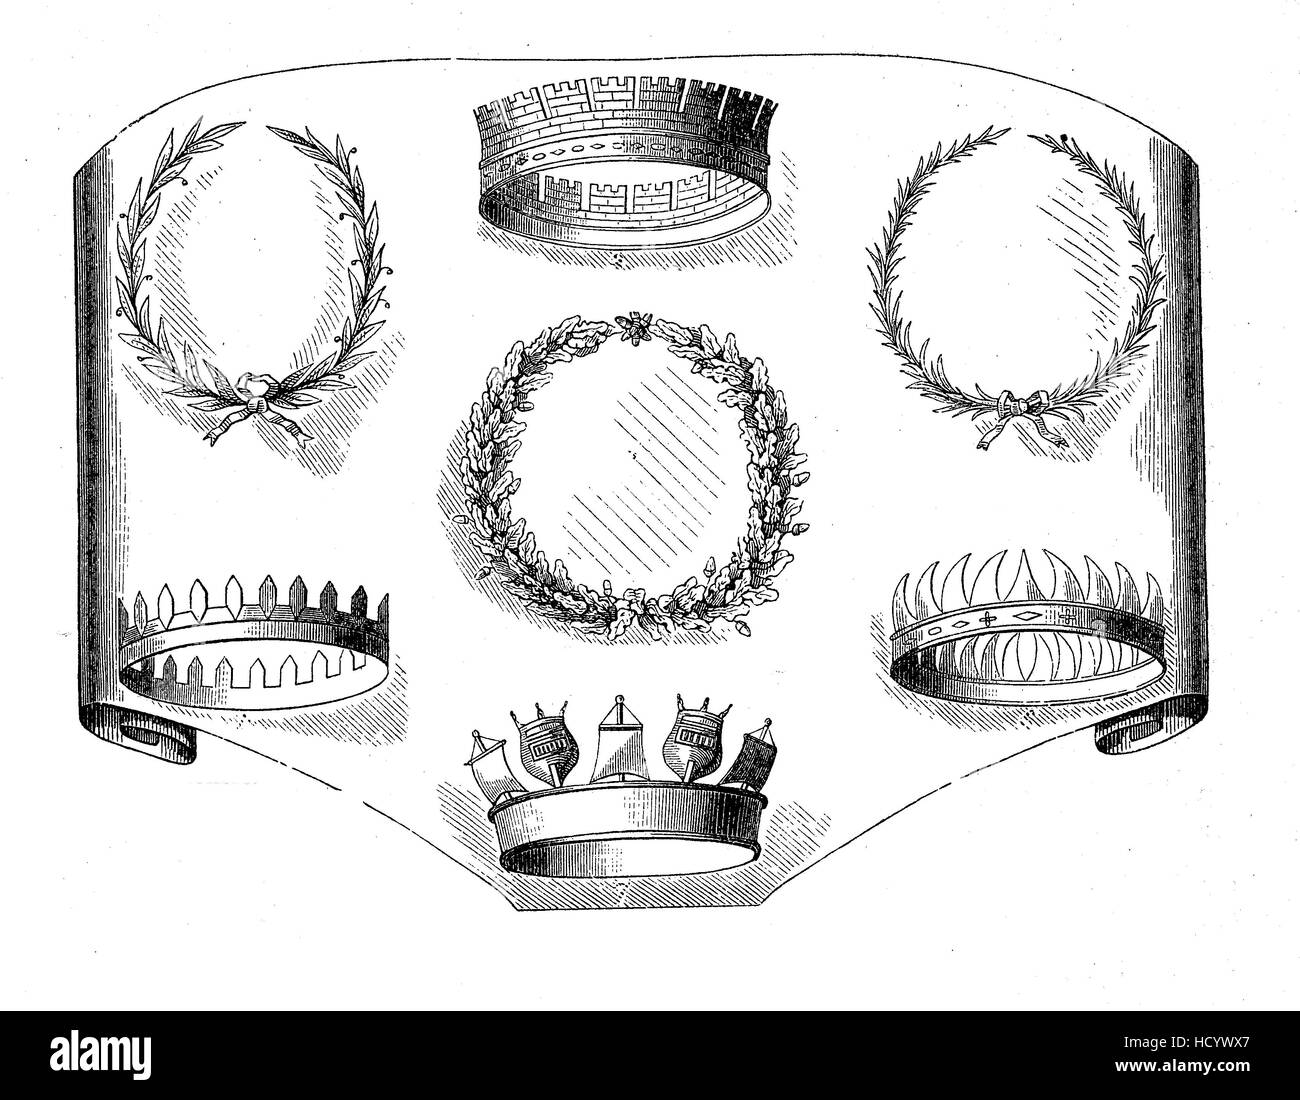 roman crowns ao ancient Rone, the story of the ancient Rome, roman Empire, Italy - Stock Image